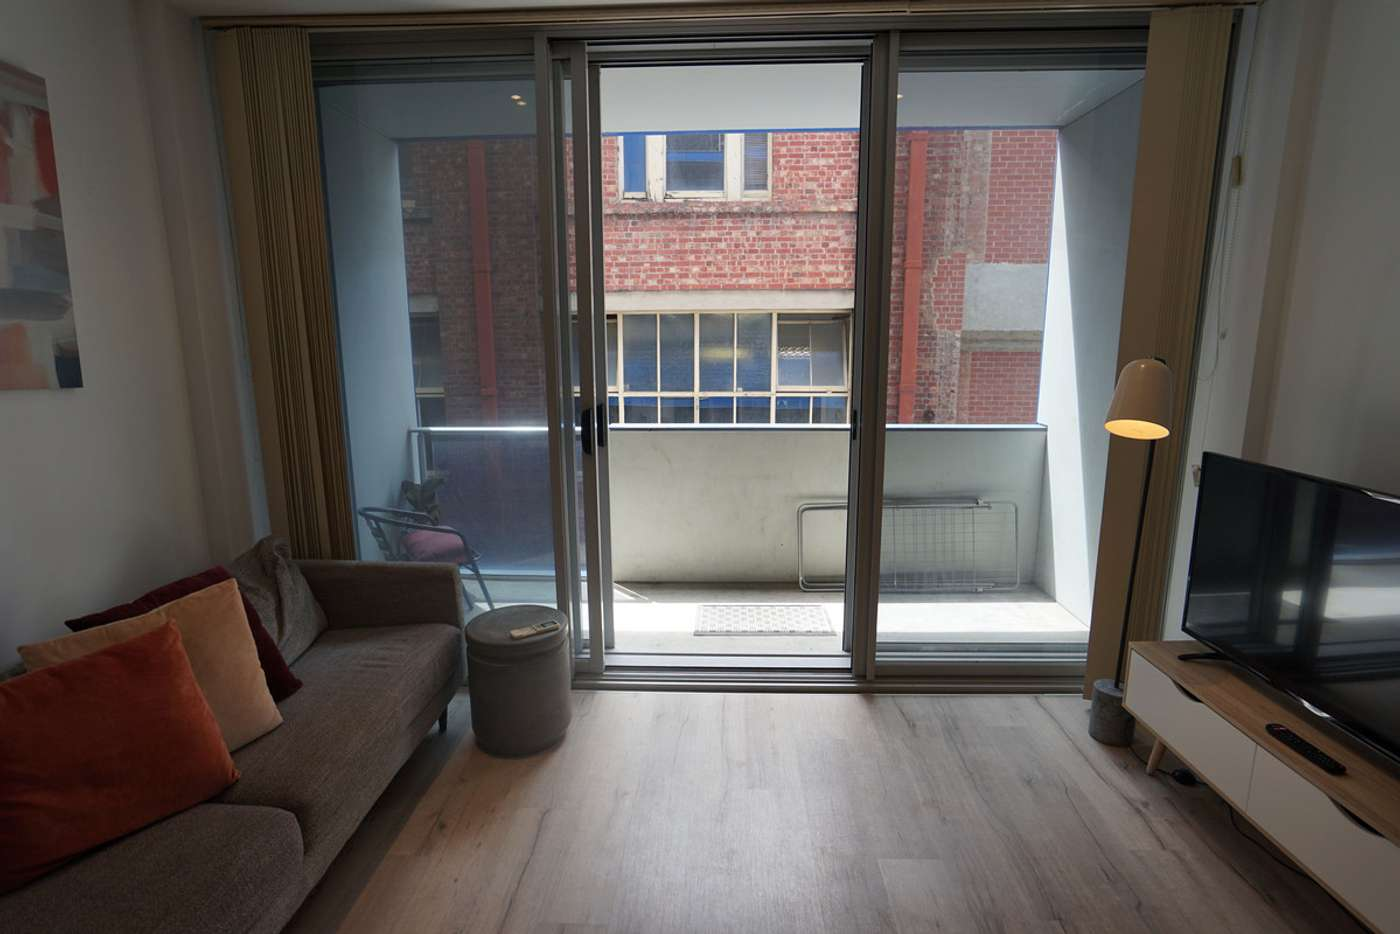 Main view of Homely apartment listing, 45 York Street, Adelaide SA 5000